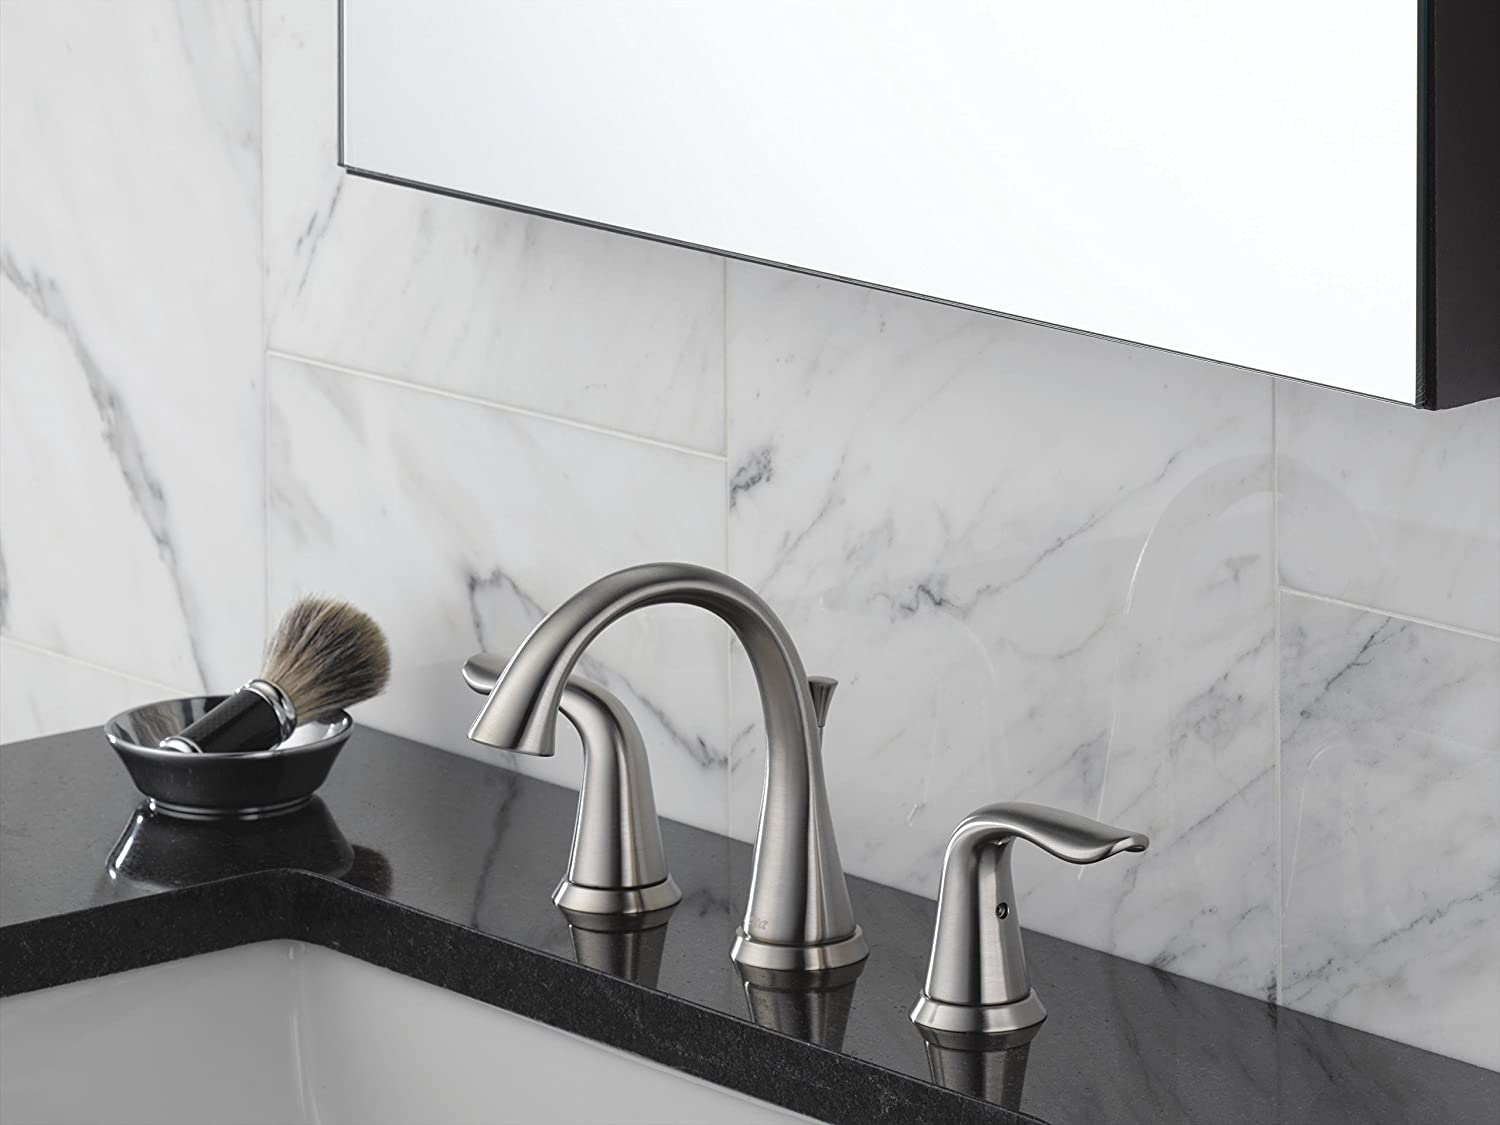 Delta 3538 SSMPU DST Lahara Two Handle Widespread Bathroom Faucet,  Stainless   Touch On Bathroom Sink Faucets   Amazon.com